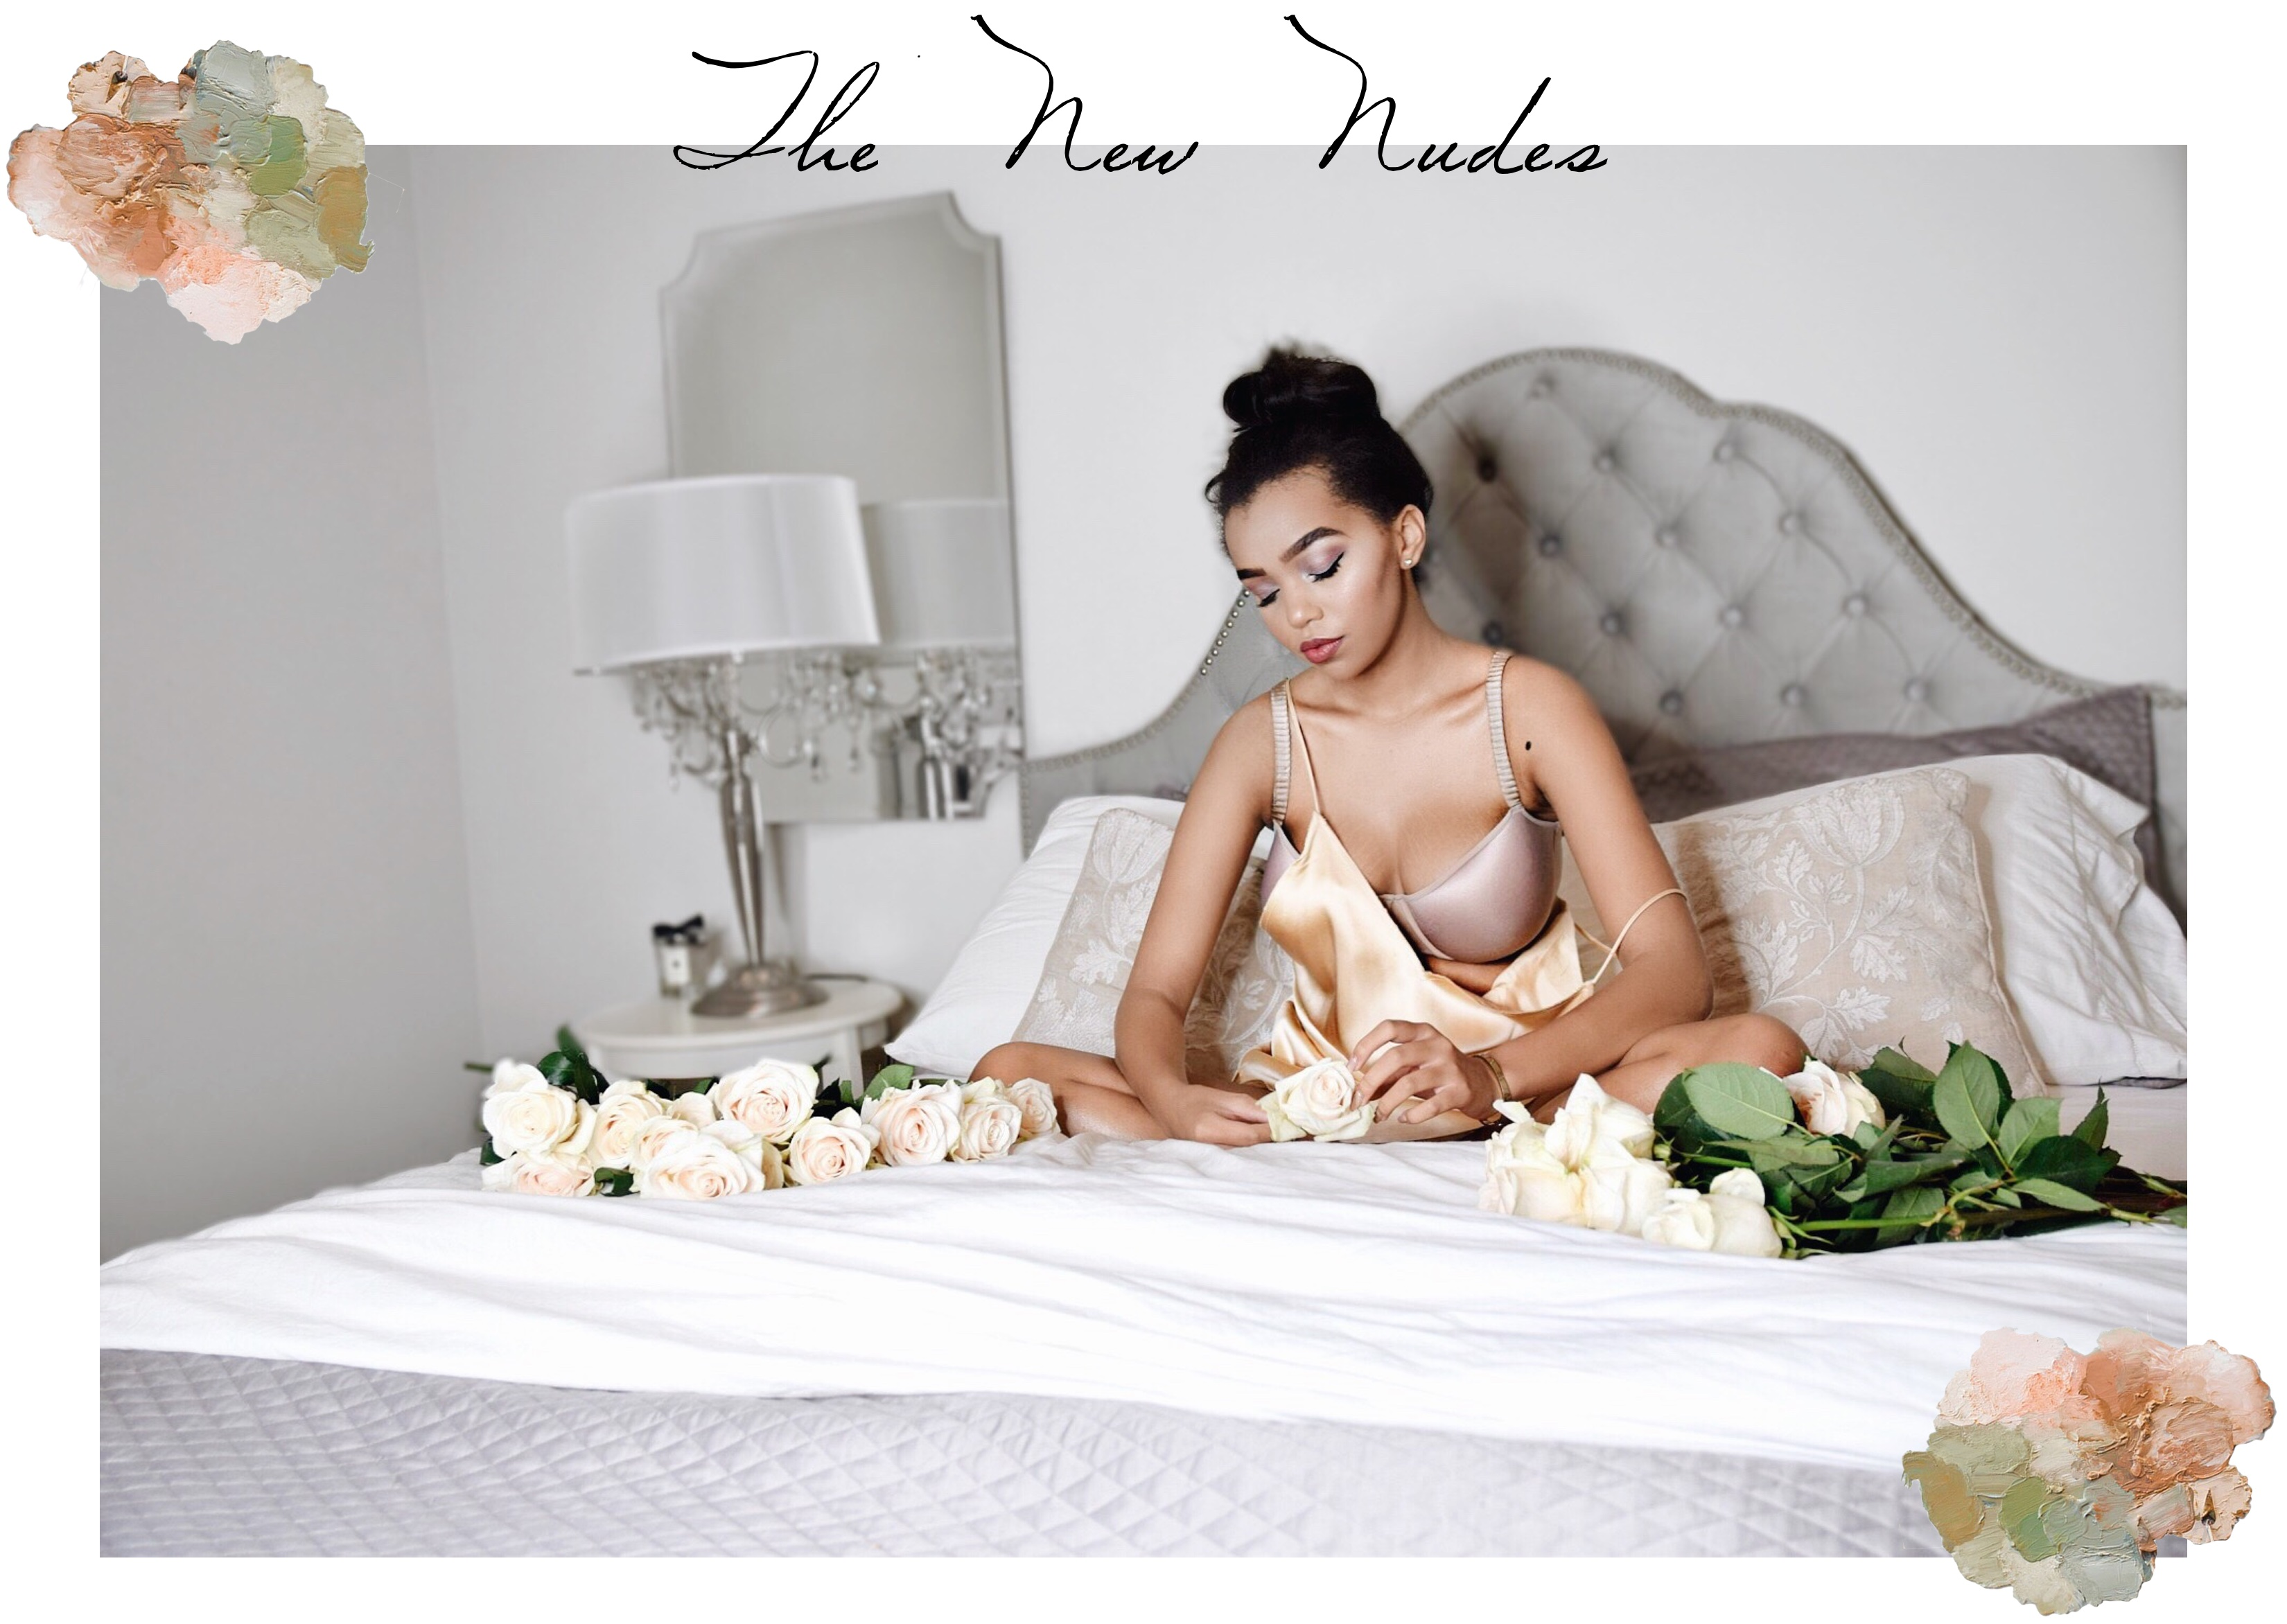 Third Love ♥︎ The New Nakeds // Third Love Lingerie & Intimates // Custom Bra Fittings For All Shapes, Sizes and Preferences // The New Naked Complimenting Every Skin Tone // Los Angeles Fashion Blogger Daphne Blunt: To Style, With Love